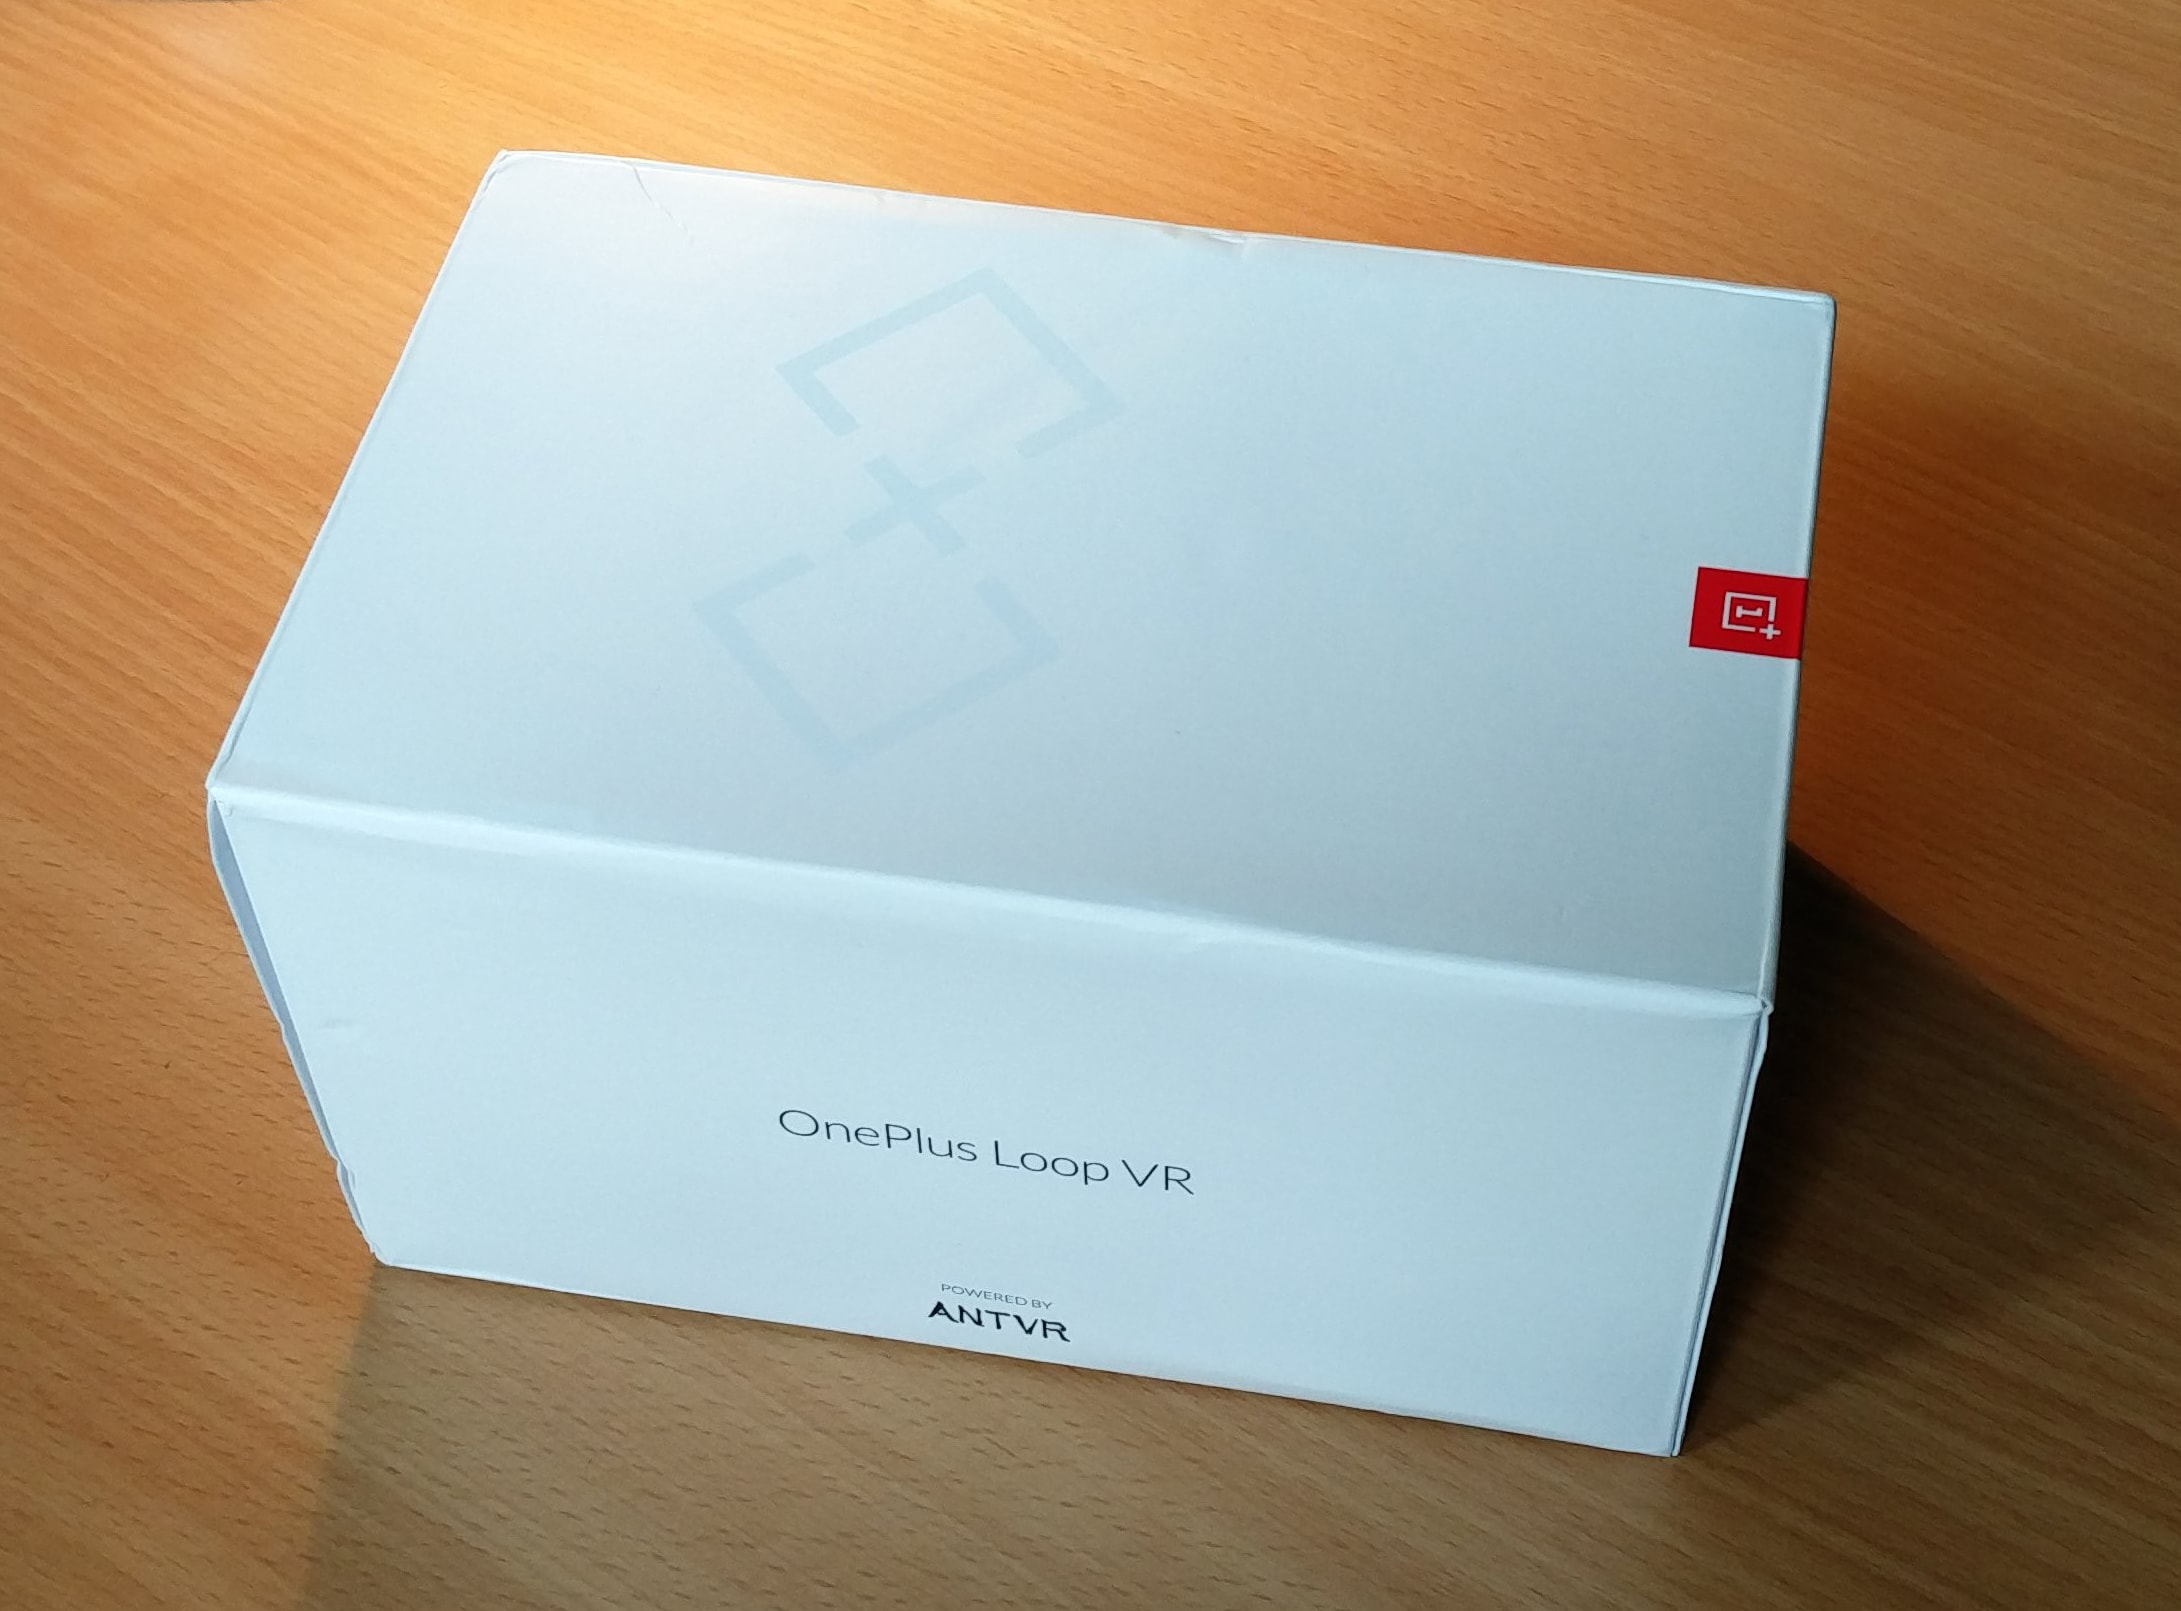 White box of the OnePlus Loop